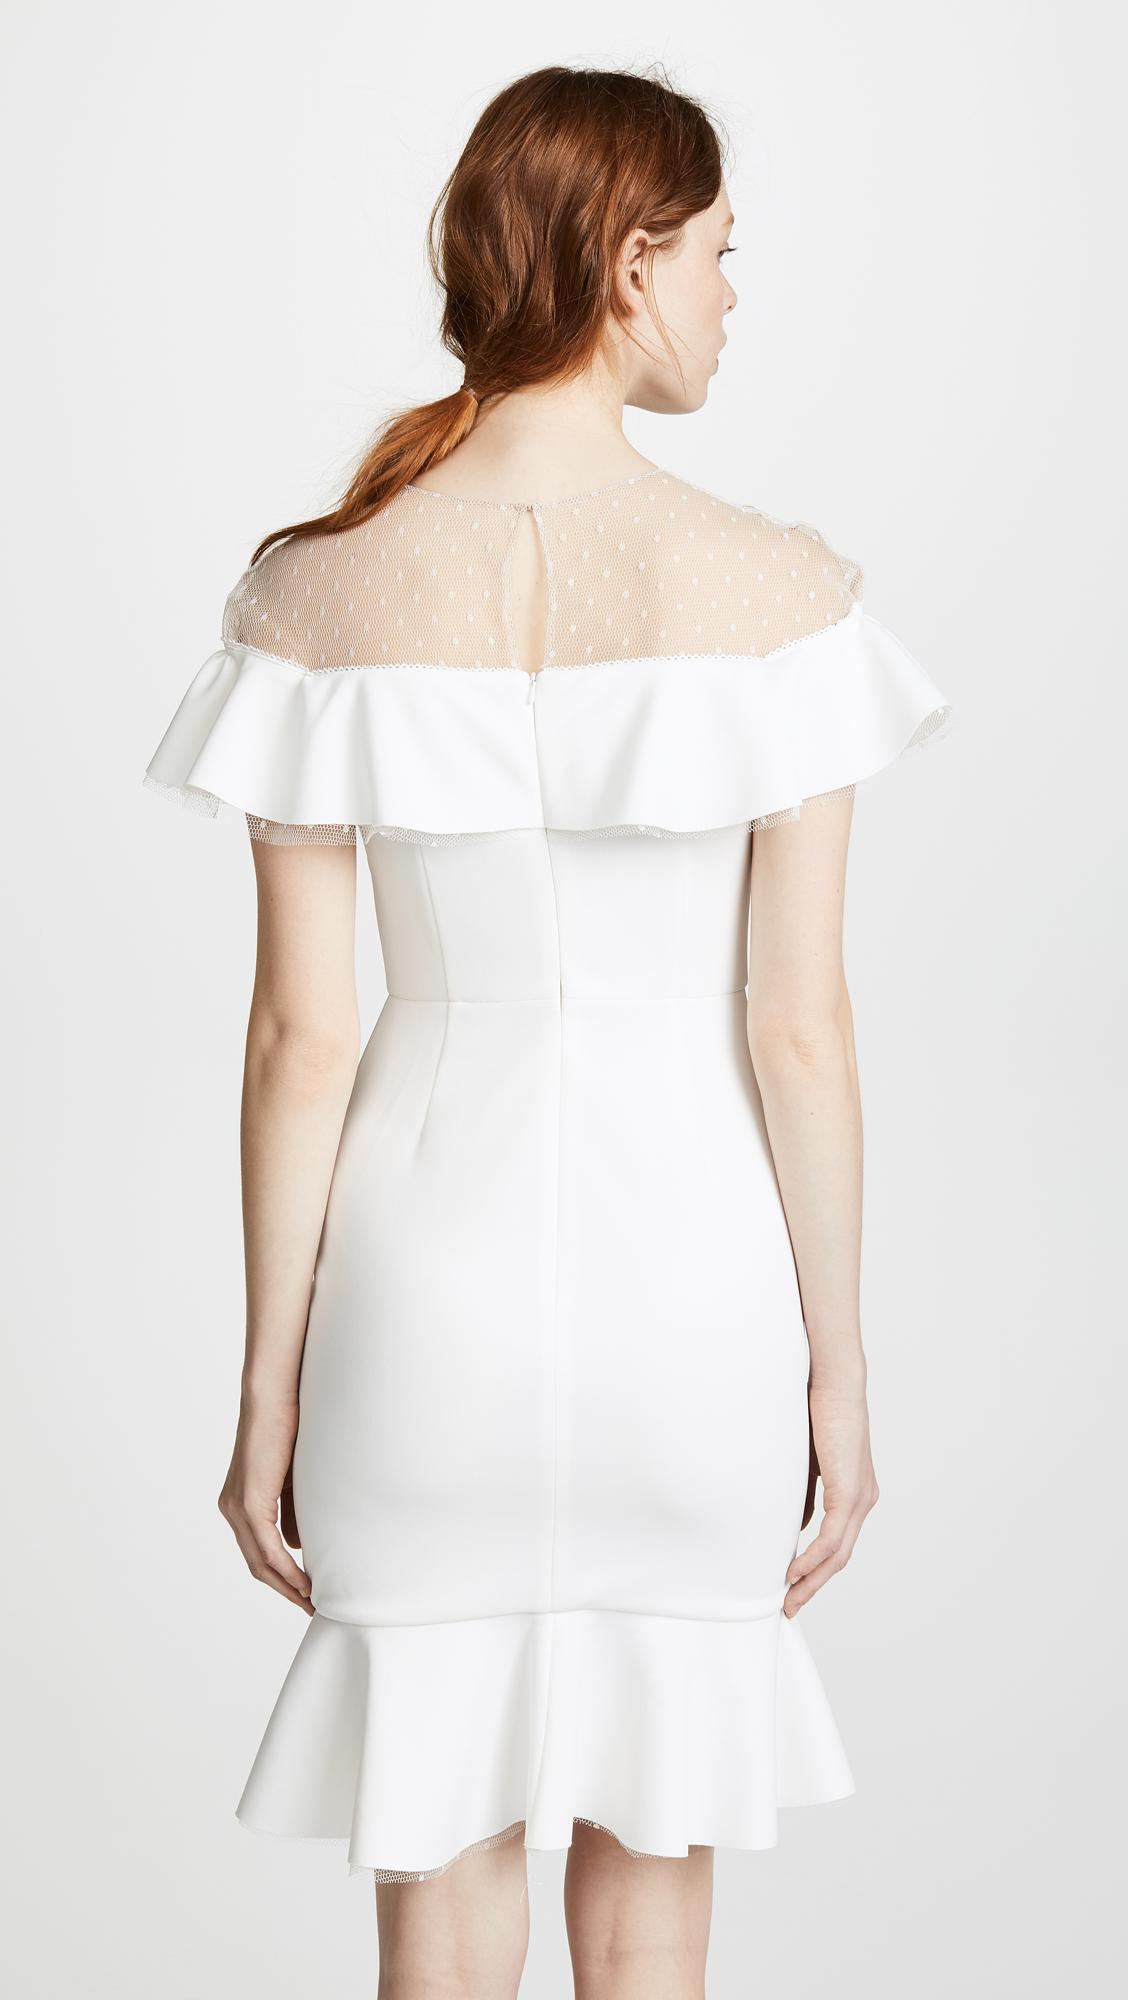 f5c4e37dd88 Gallery. Previously sold at  Shopbop · Women s Neoprene Dresses Women s  White Cocktail Dresses